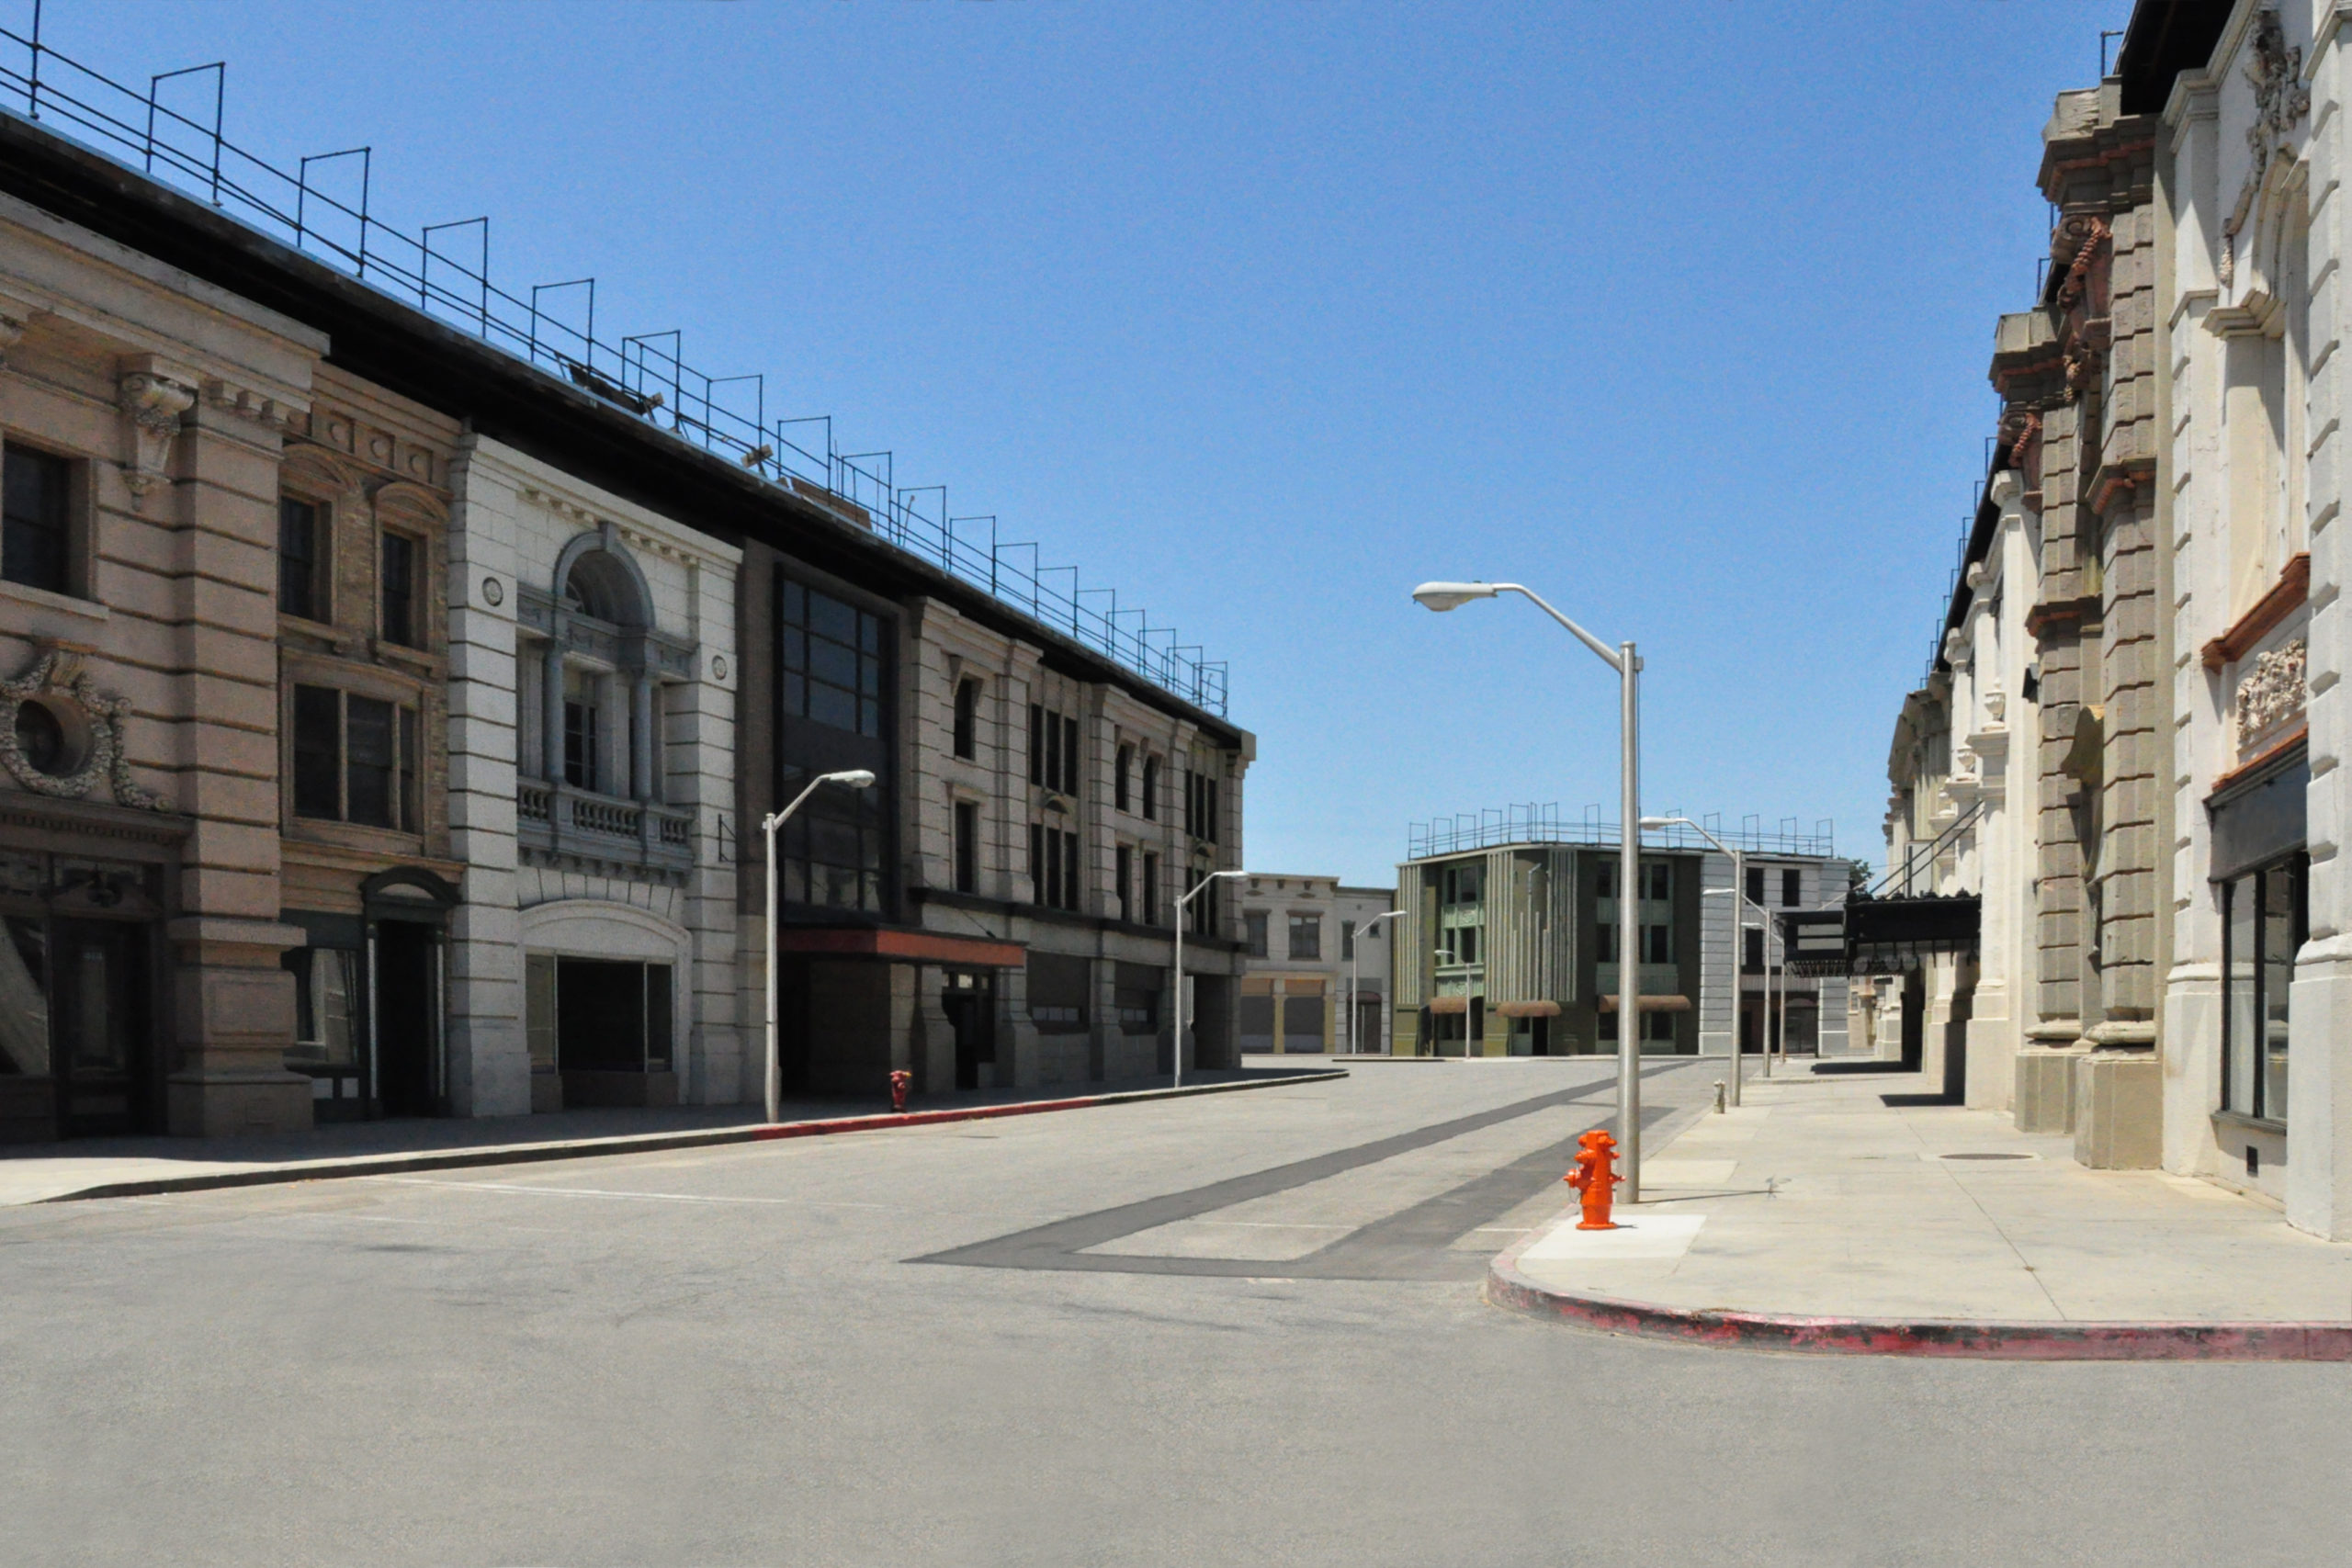 WB 1, Studio Warner Brothers, Los Angeles